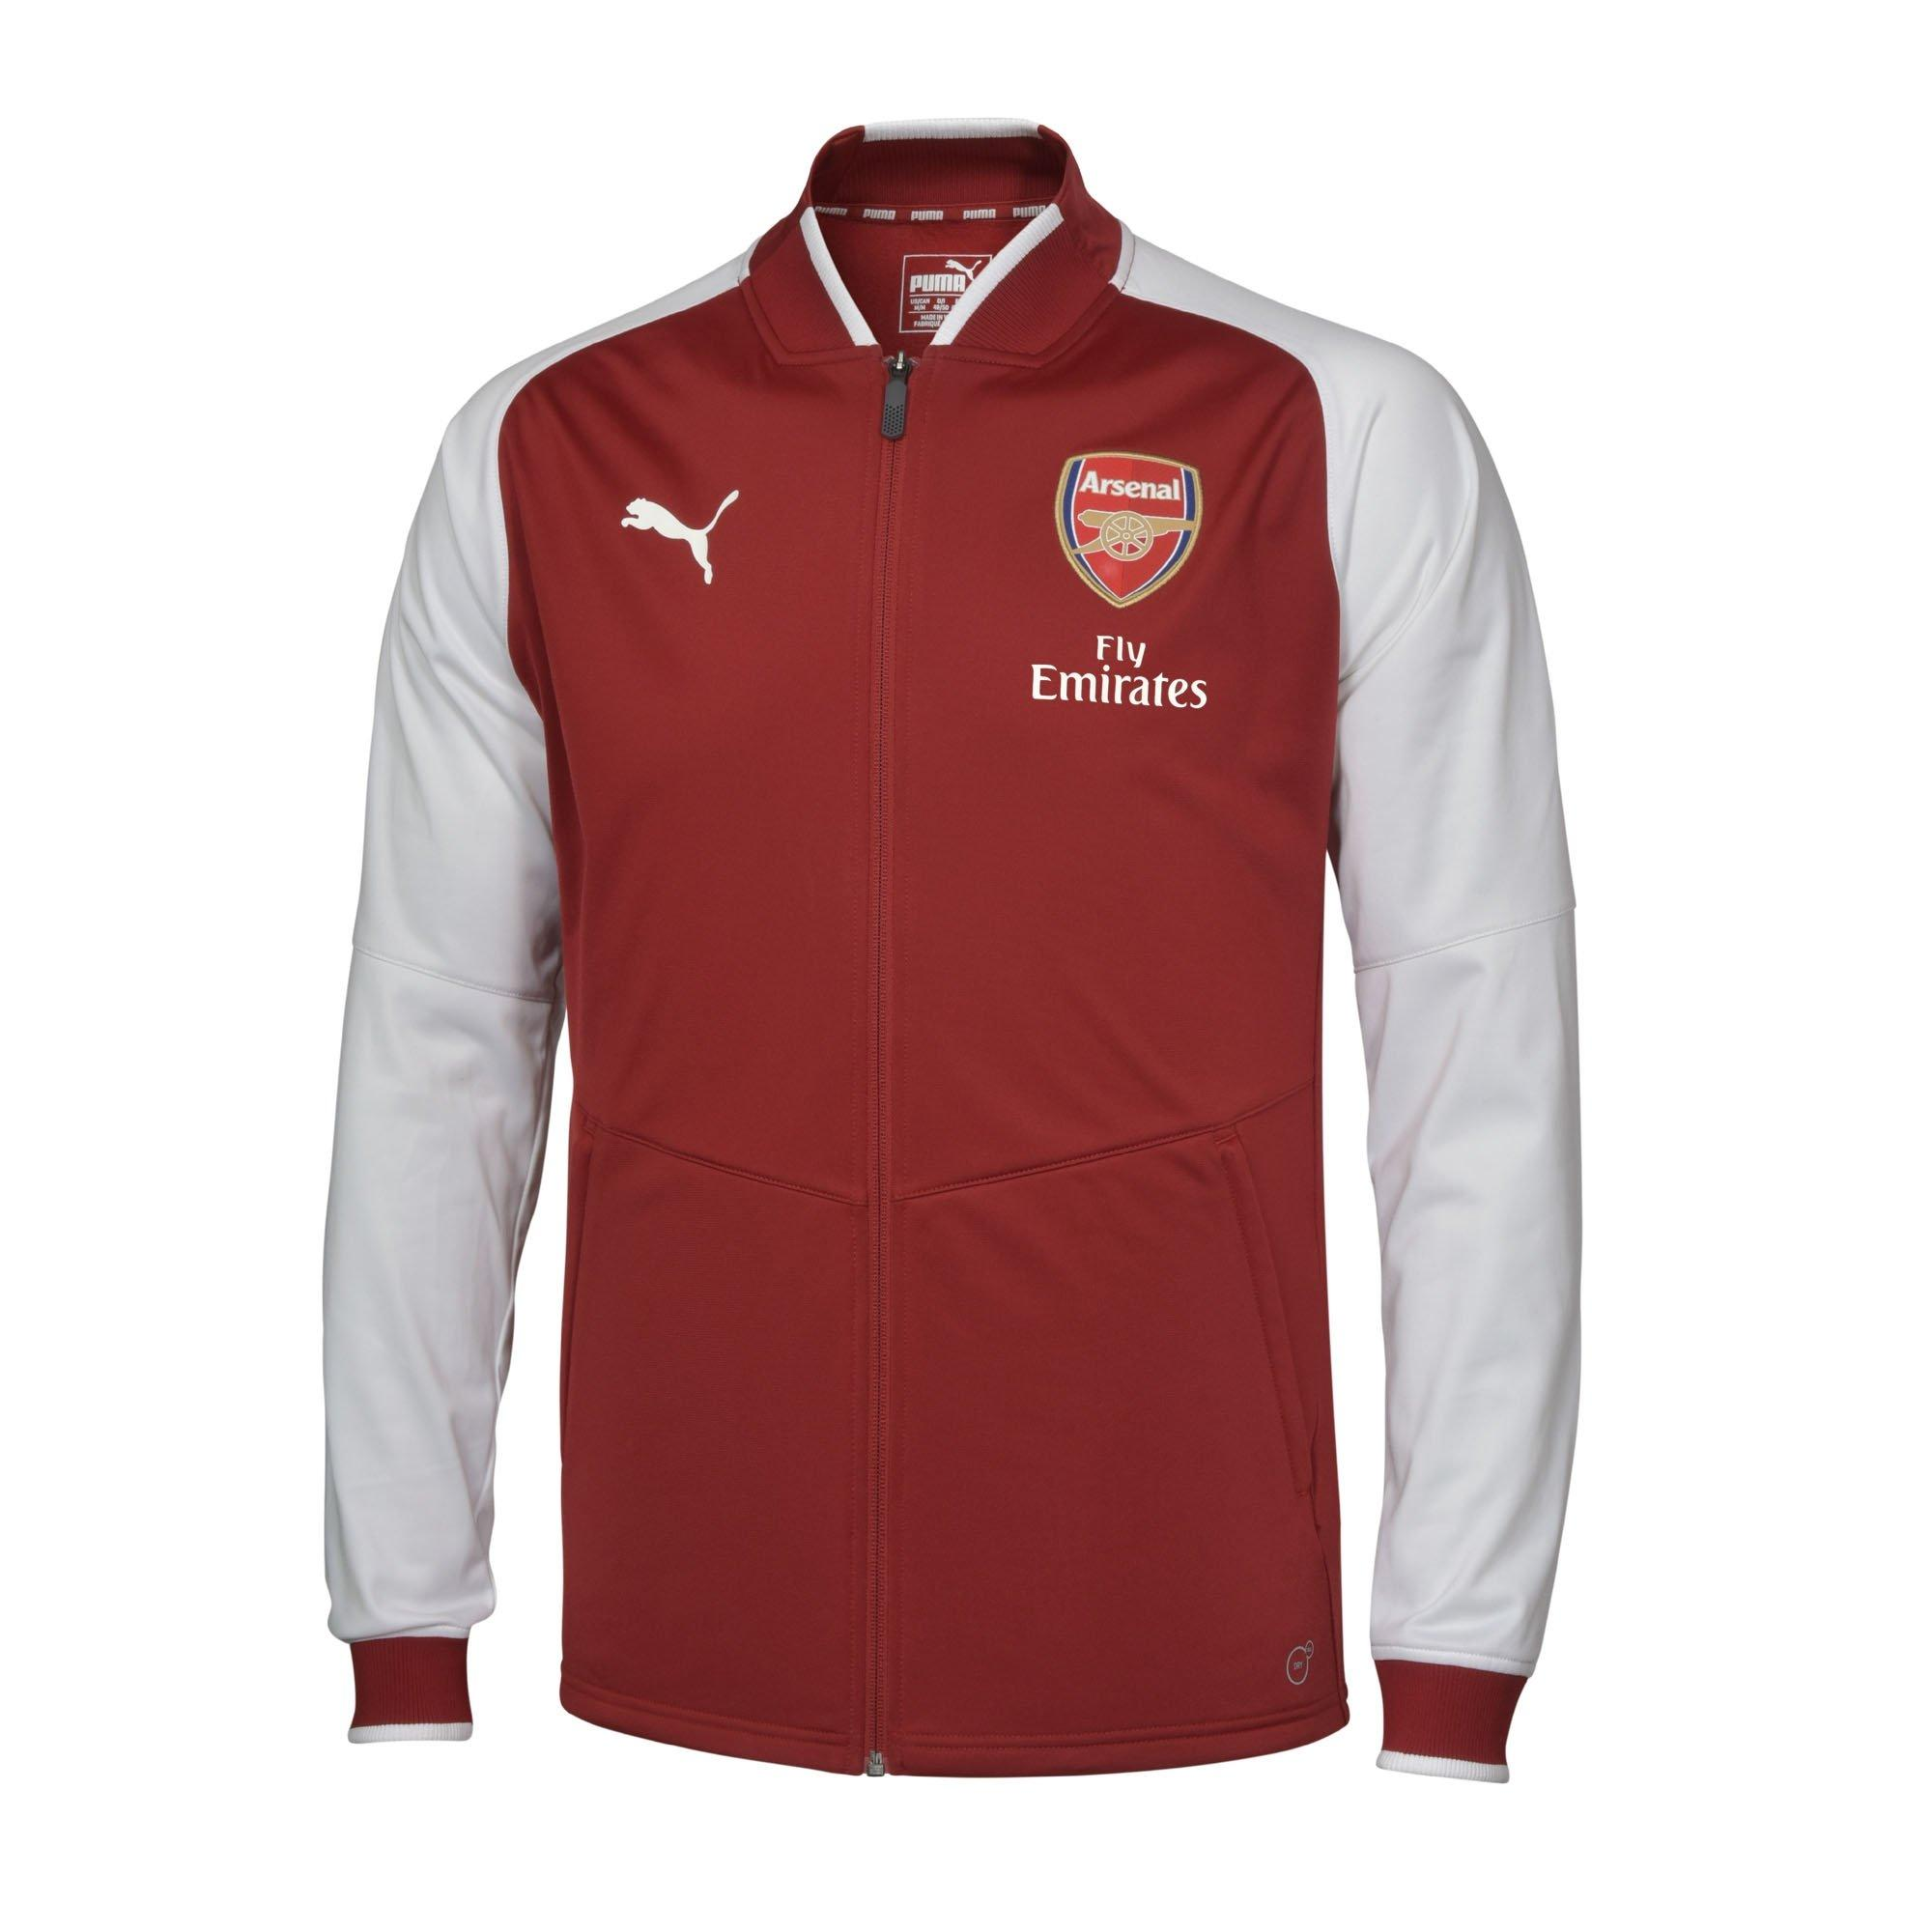 buy arsenal jacket on sale   OFF51% Discounts f02cd822c